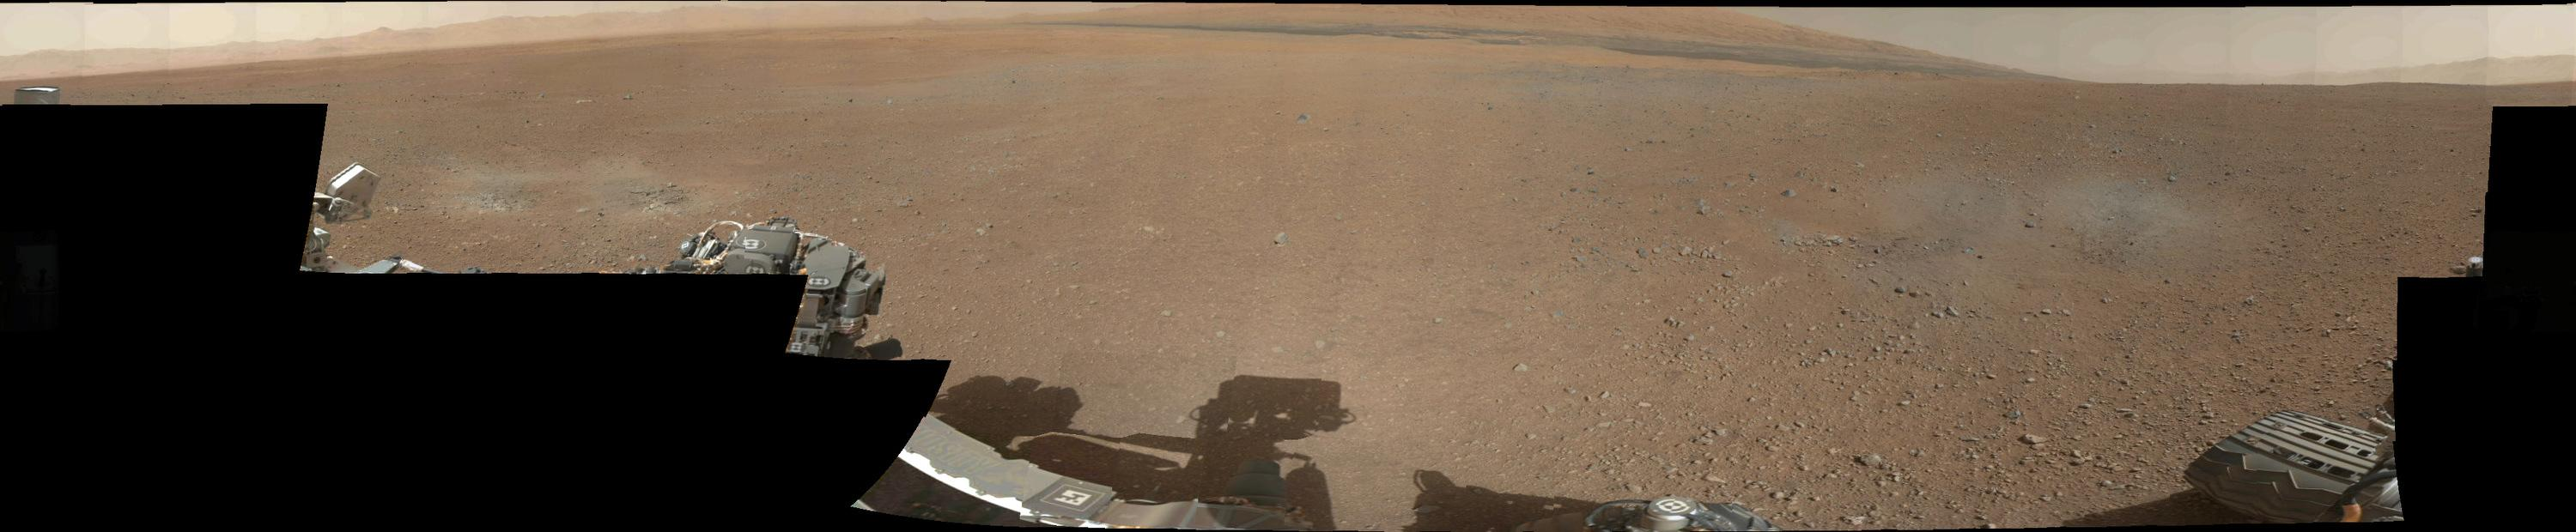 This image provided by NASA Thursday, Aug. 9, 2012, shows the first 360-degree color panorama taken on Mars by NASA's Curiosity rover. The panorama was stitched together using thumbnail images taken by the rover's mast camera. Curiosity landed in Gale Crater on Mars on August 5, 2012 to begin a two-year mission. (AP Photo/NASA)